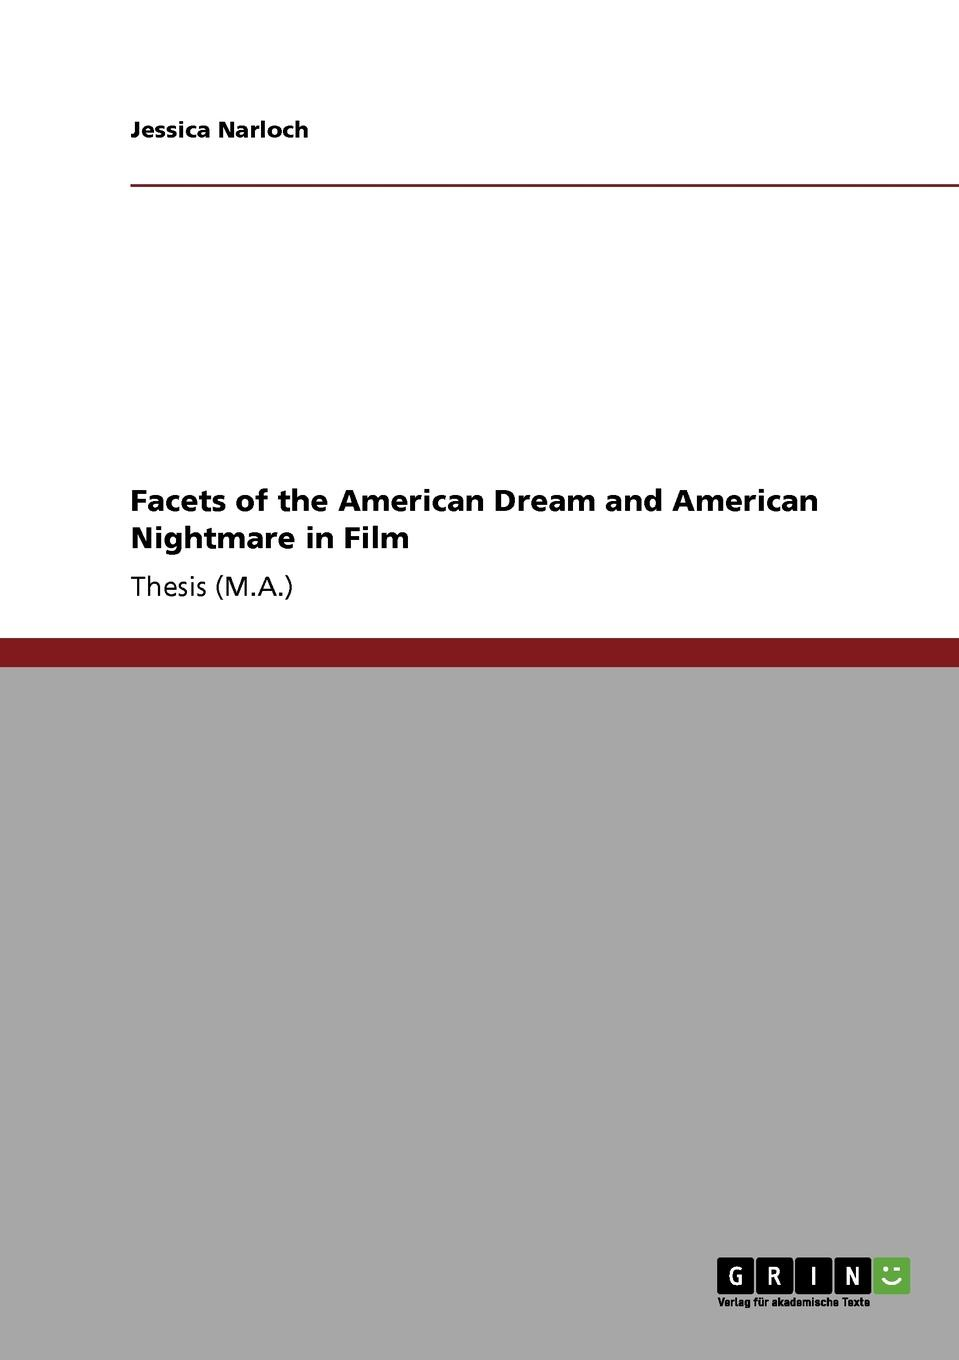 лучшая цена Jessica Narloch Facets of the American Dream and American Nightmare in Film